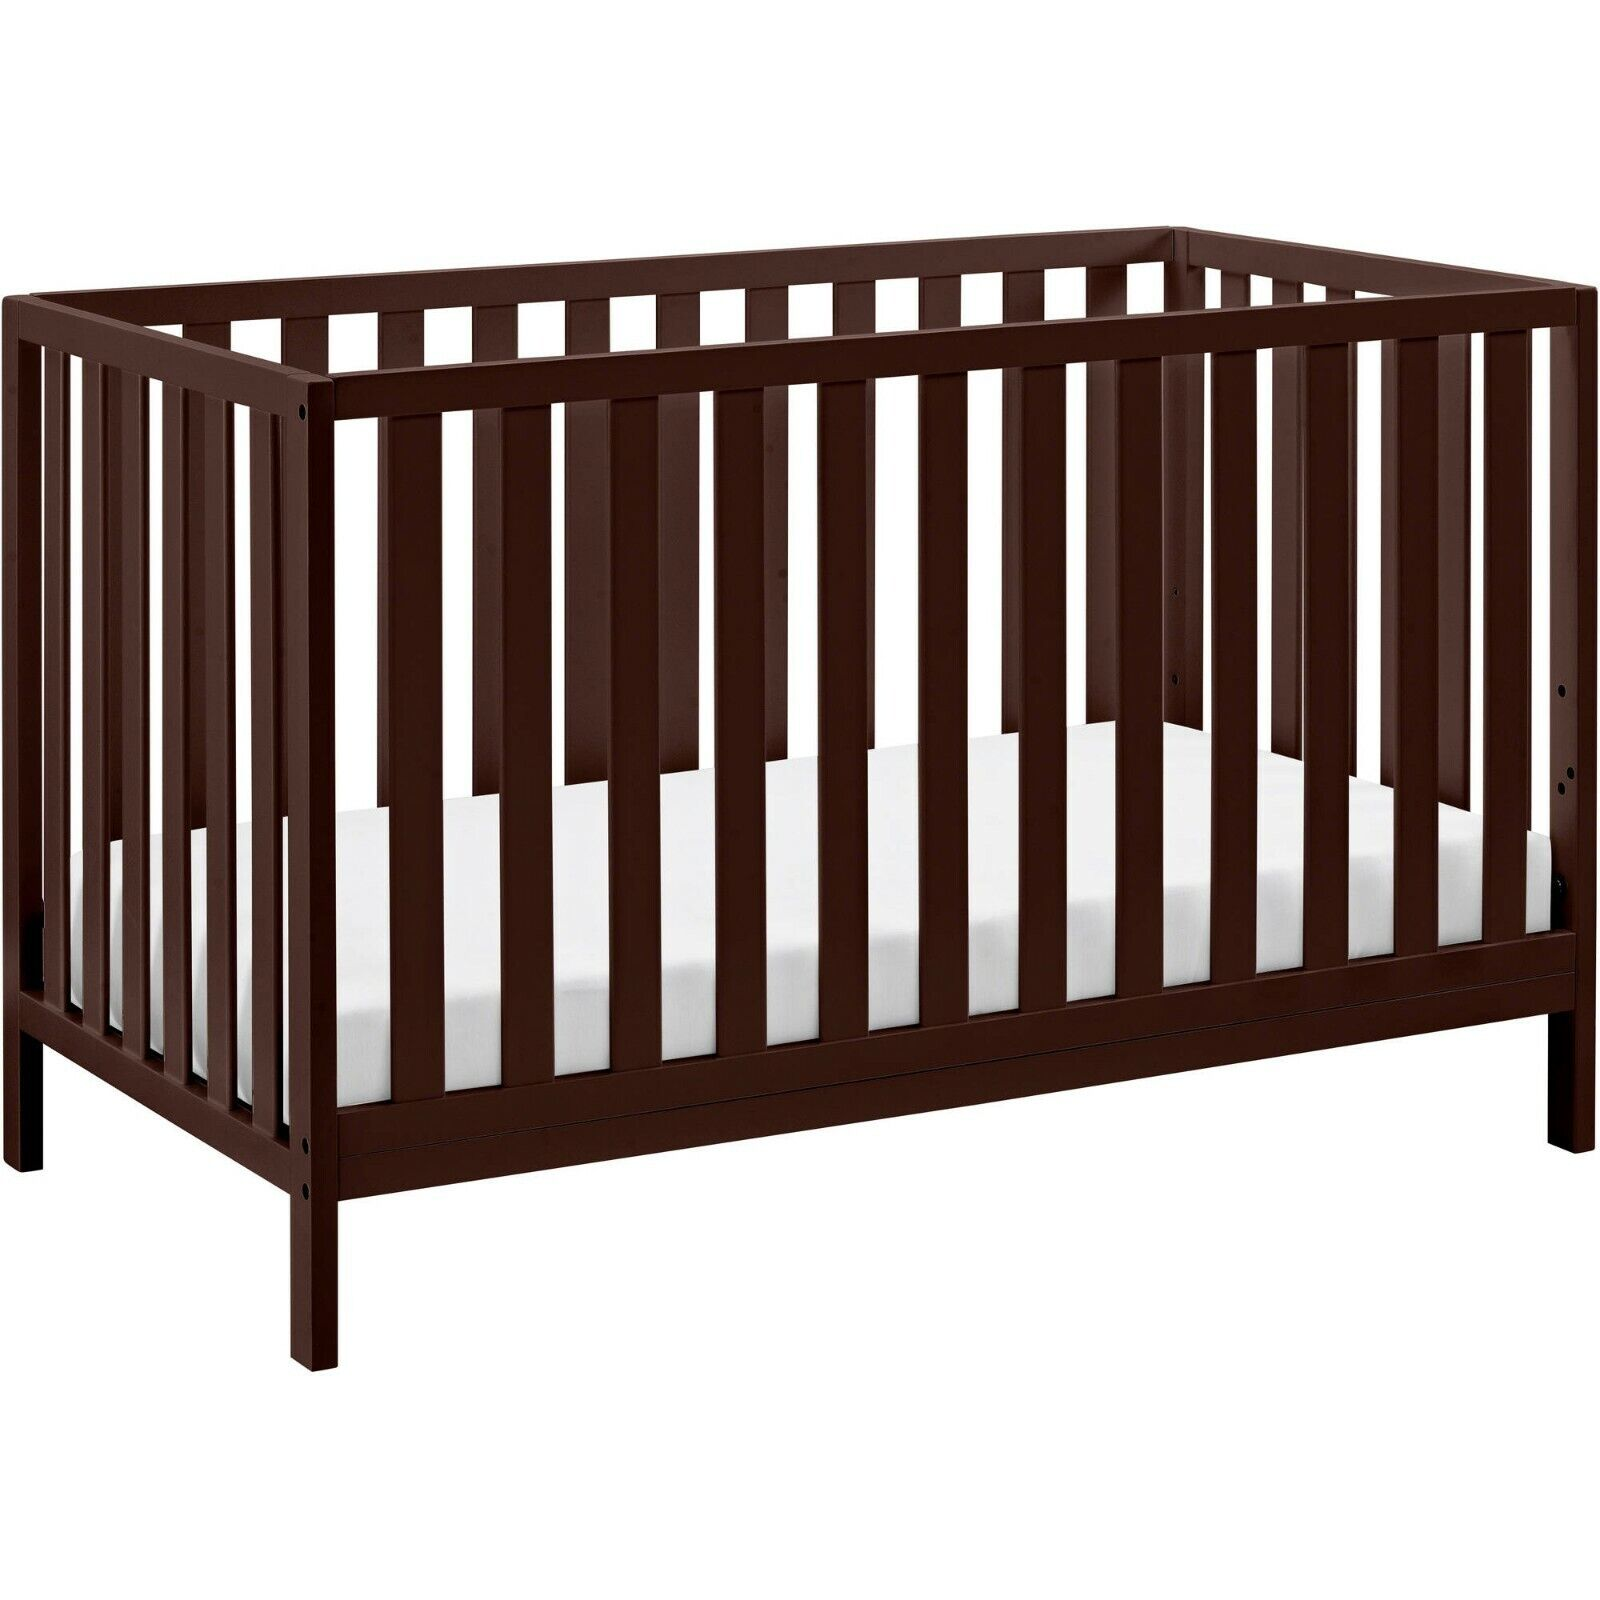 Storkcraft Sunset 4 in 1 Convertible Crib Espresso